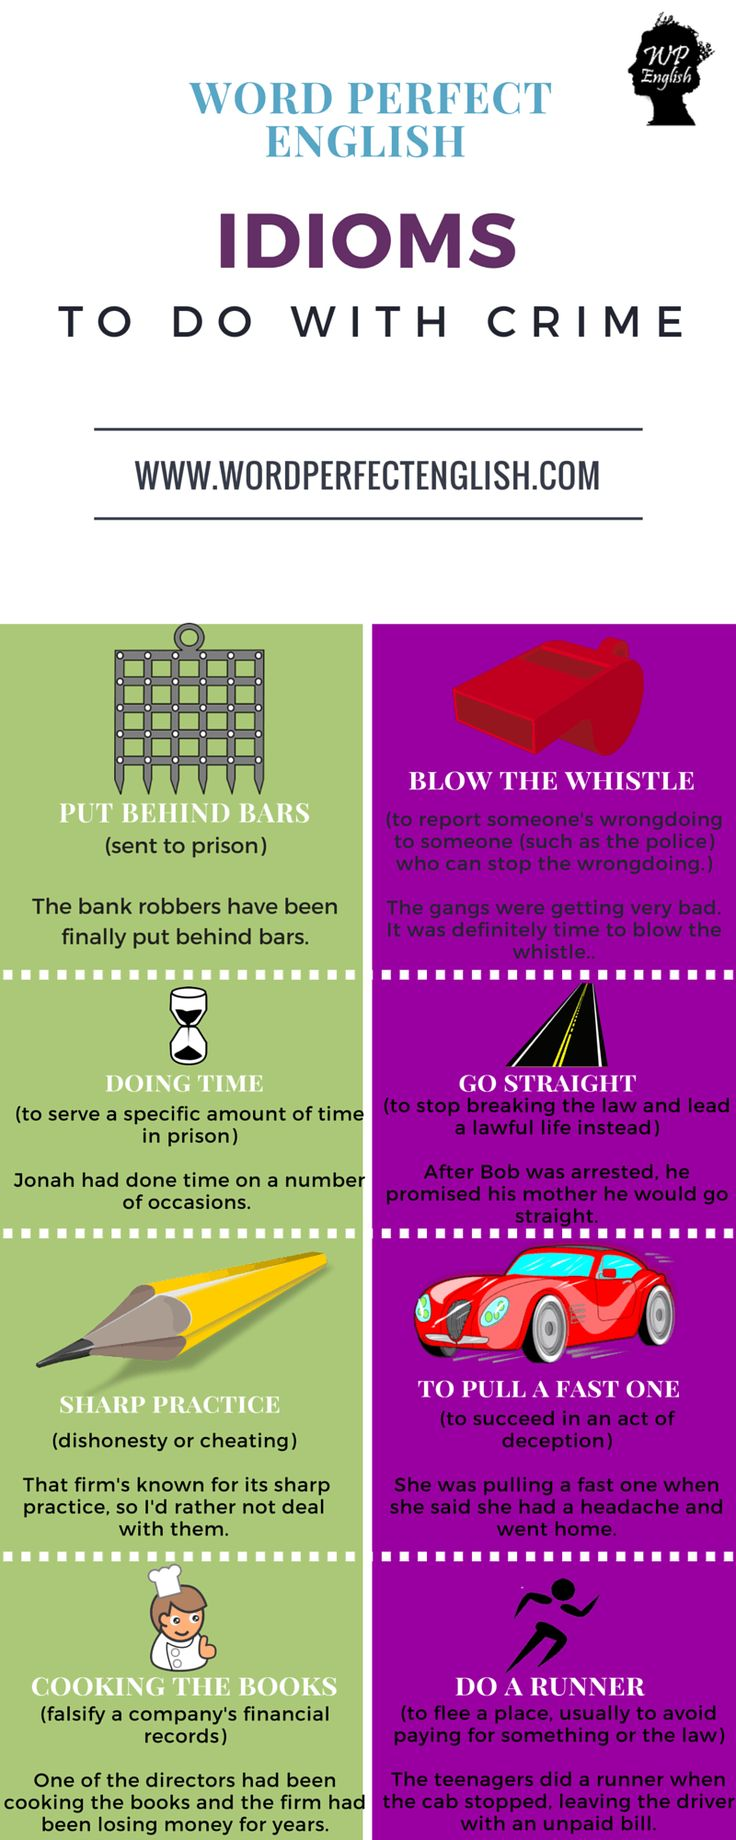 Idioms to do with Crime 1/2